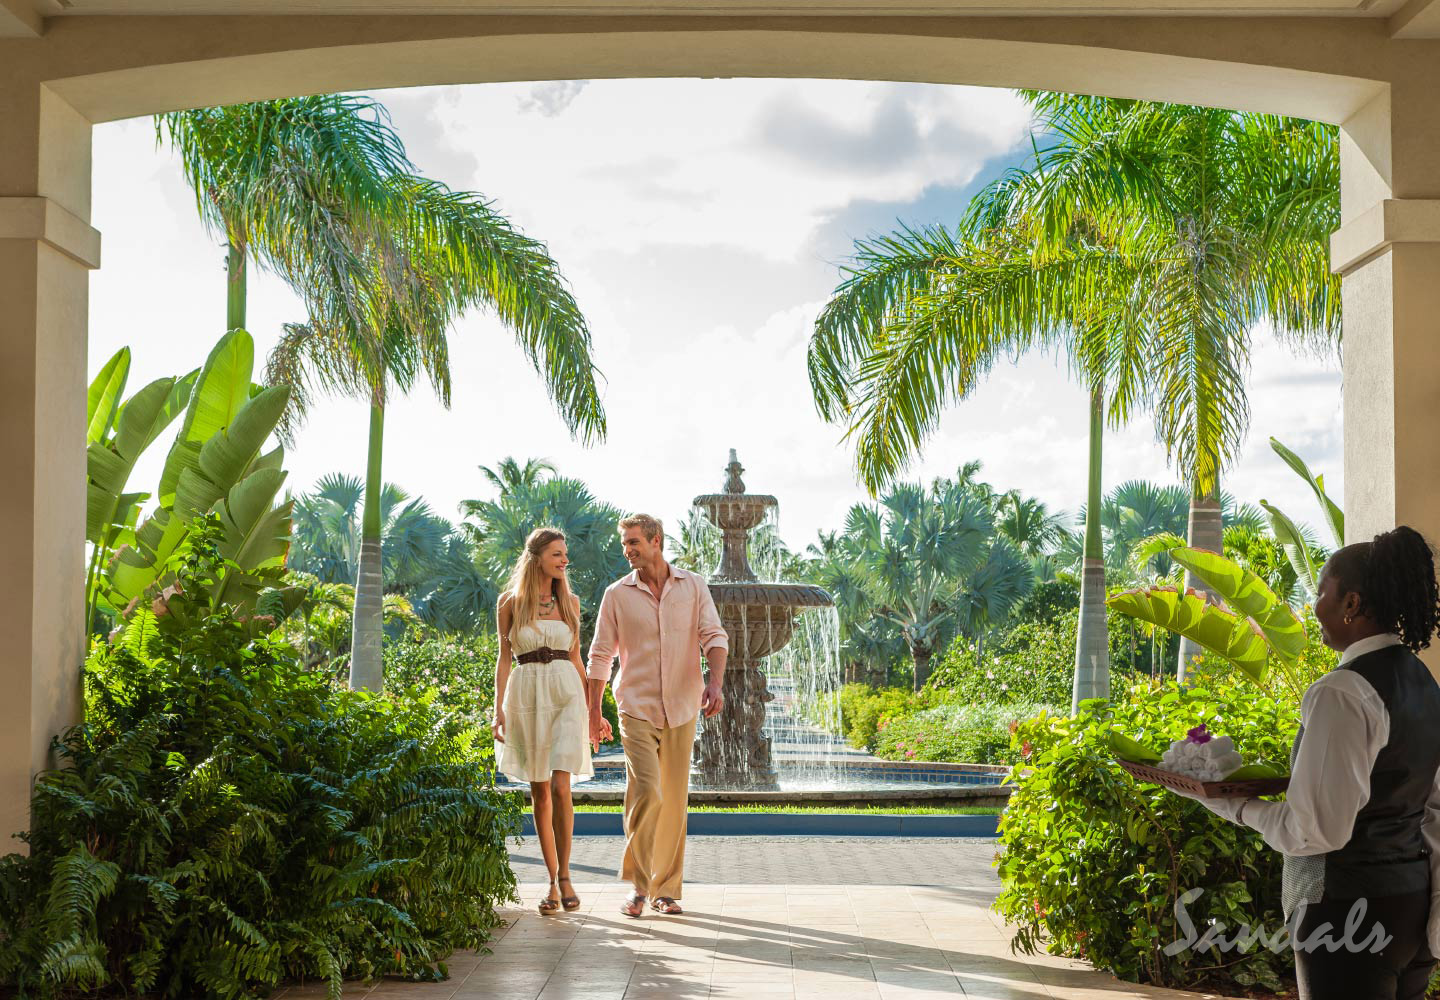 Travel Agency All-Inclusive Resort Sandals Emerald Bay 007